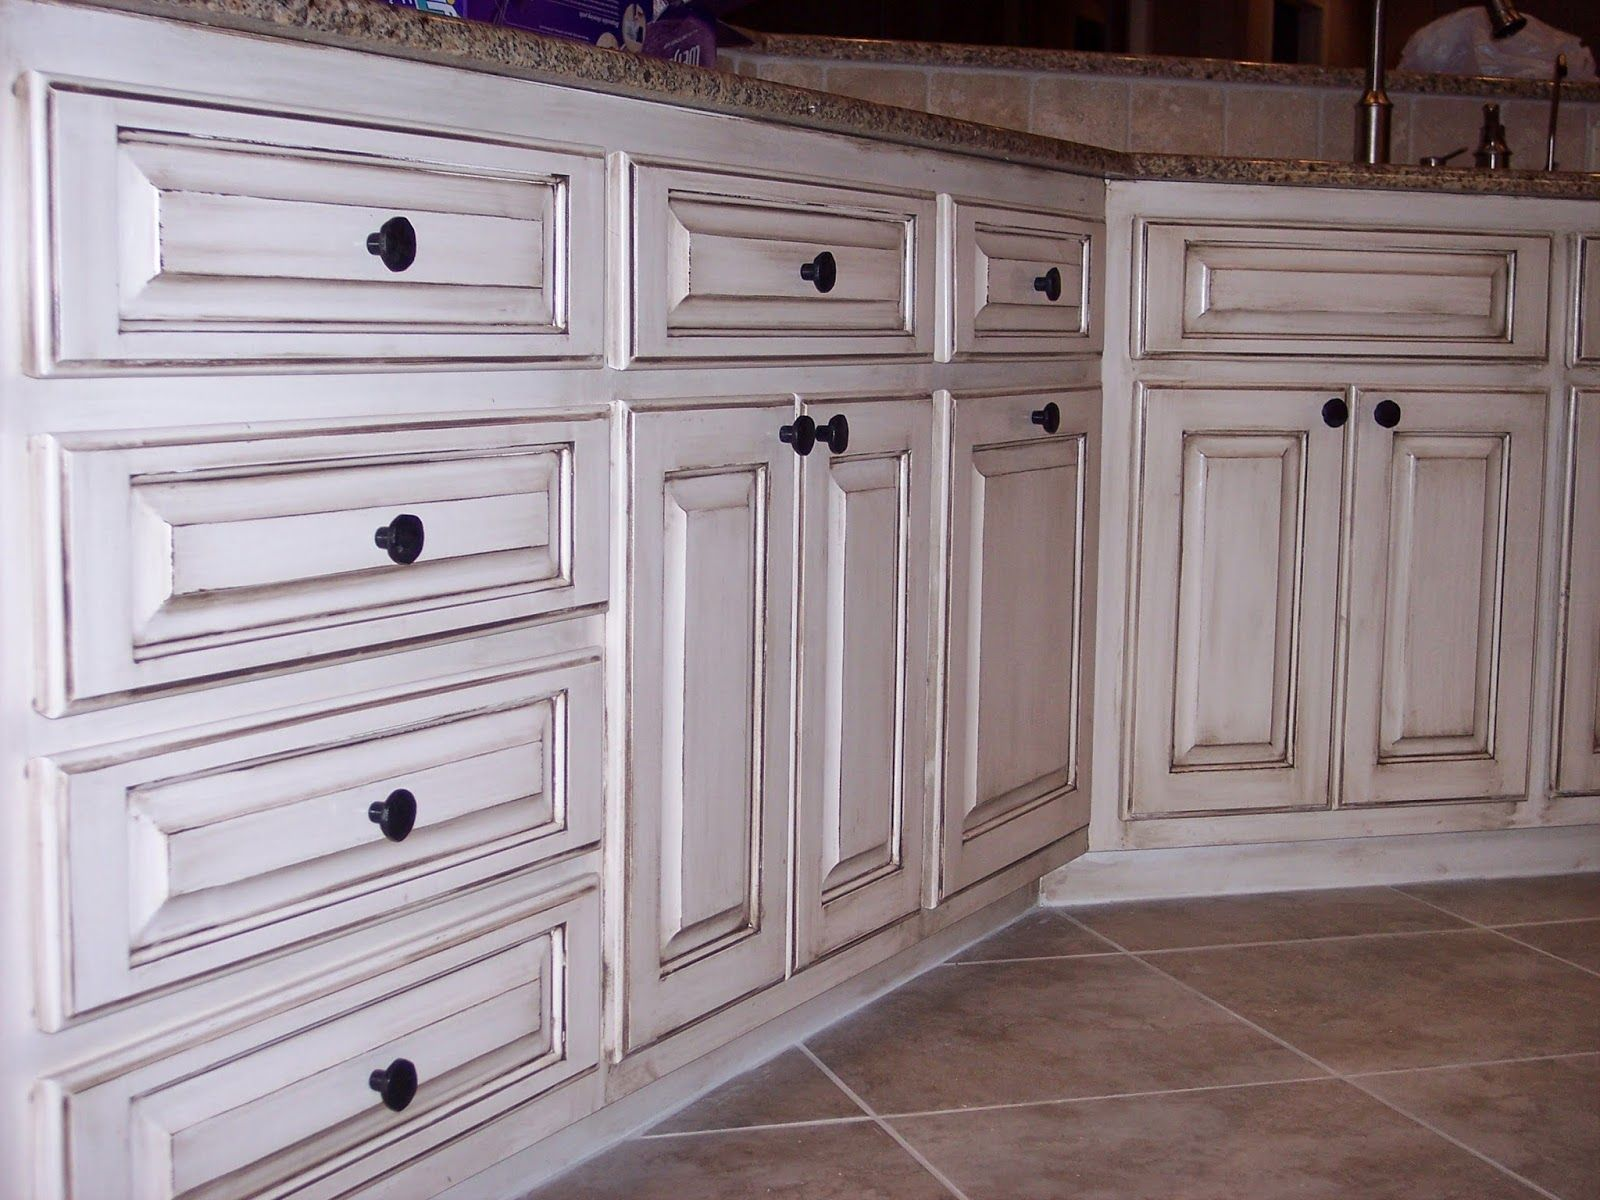 How To Glaze Kitchen Cabinets How To Paint Cabinets Secrets From A Professional All